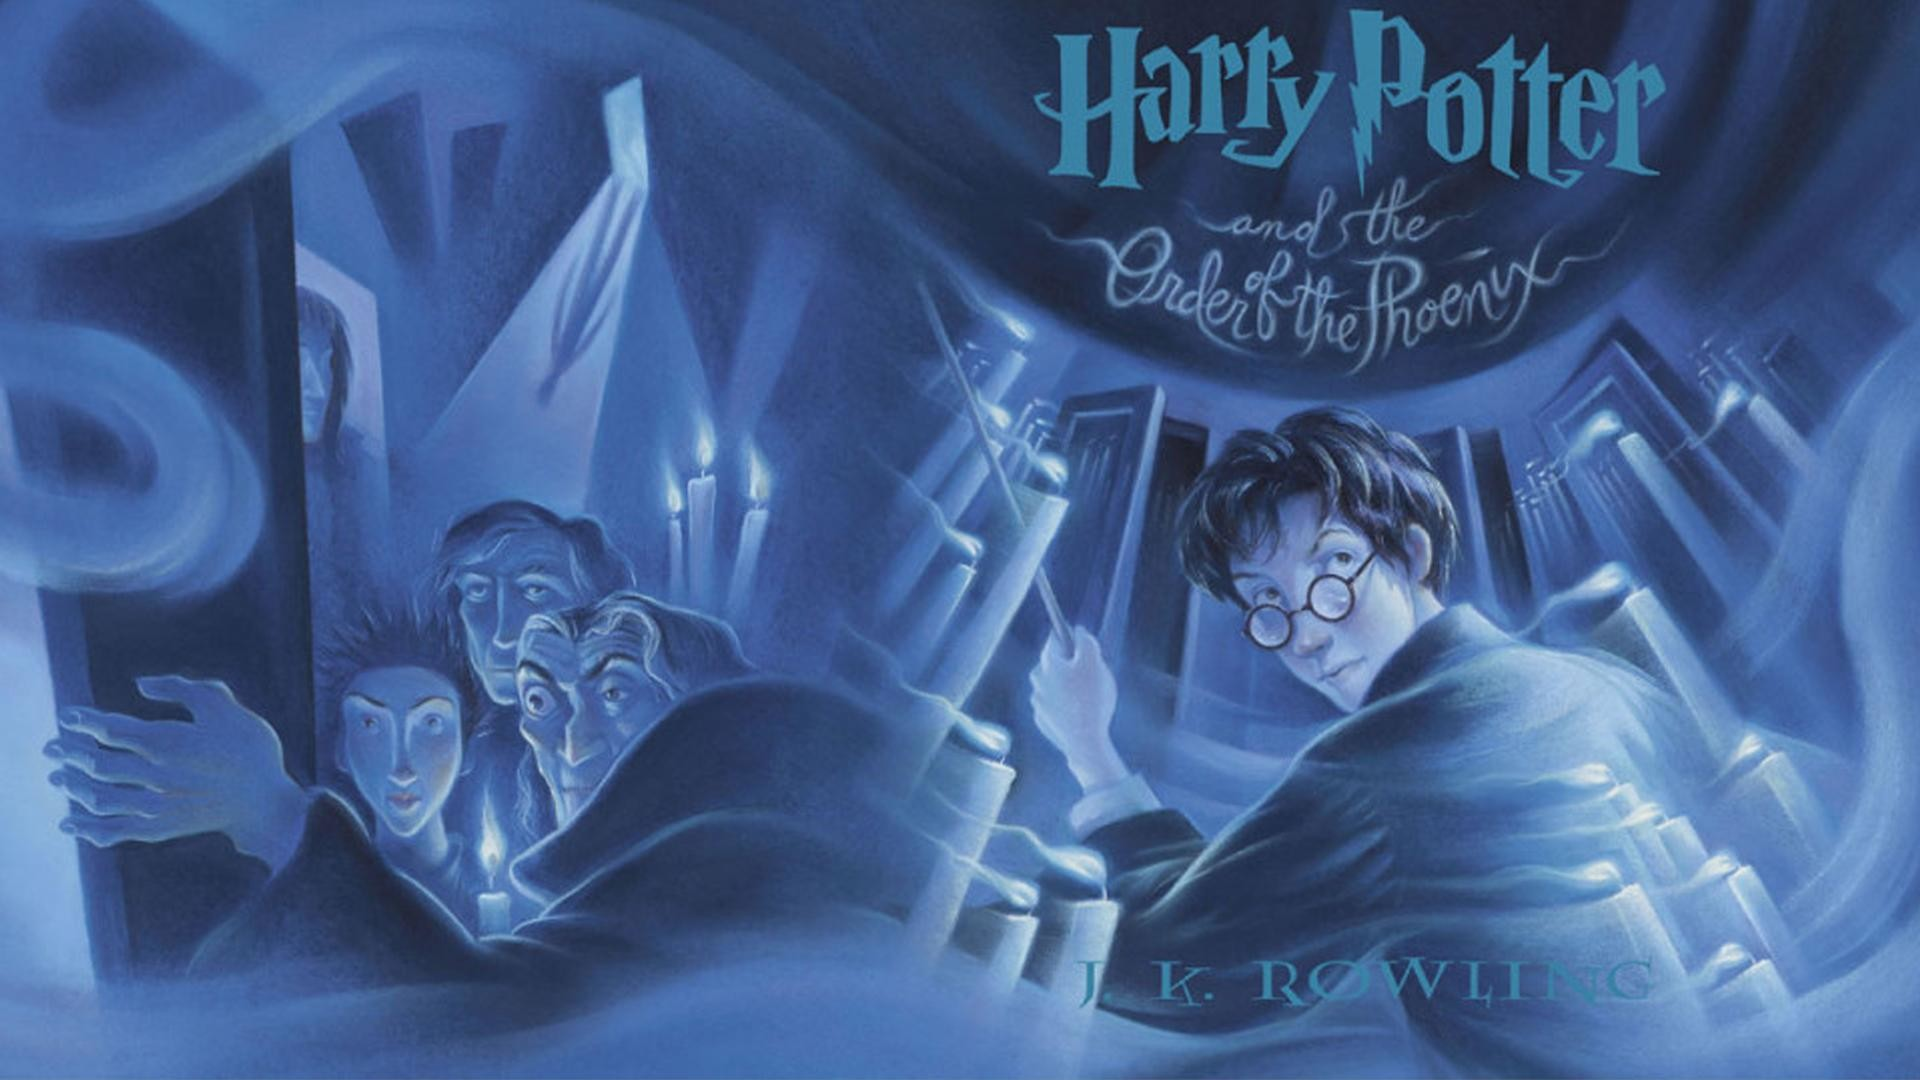 Res: 1920x1080, Harry Potter and the Order of the Phoenix